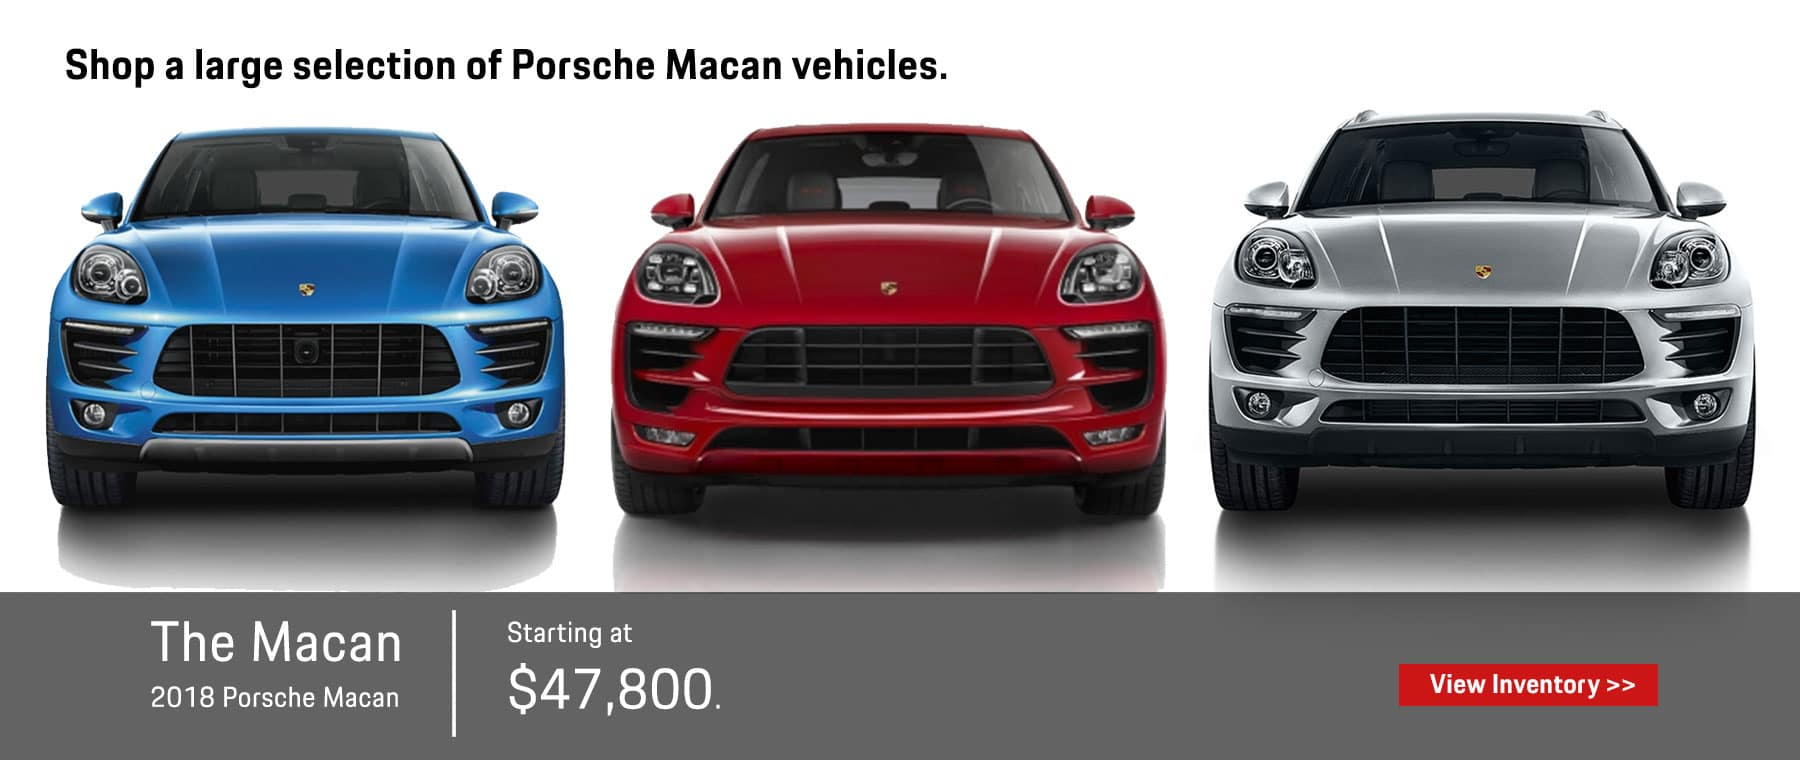 Macan Inventory